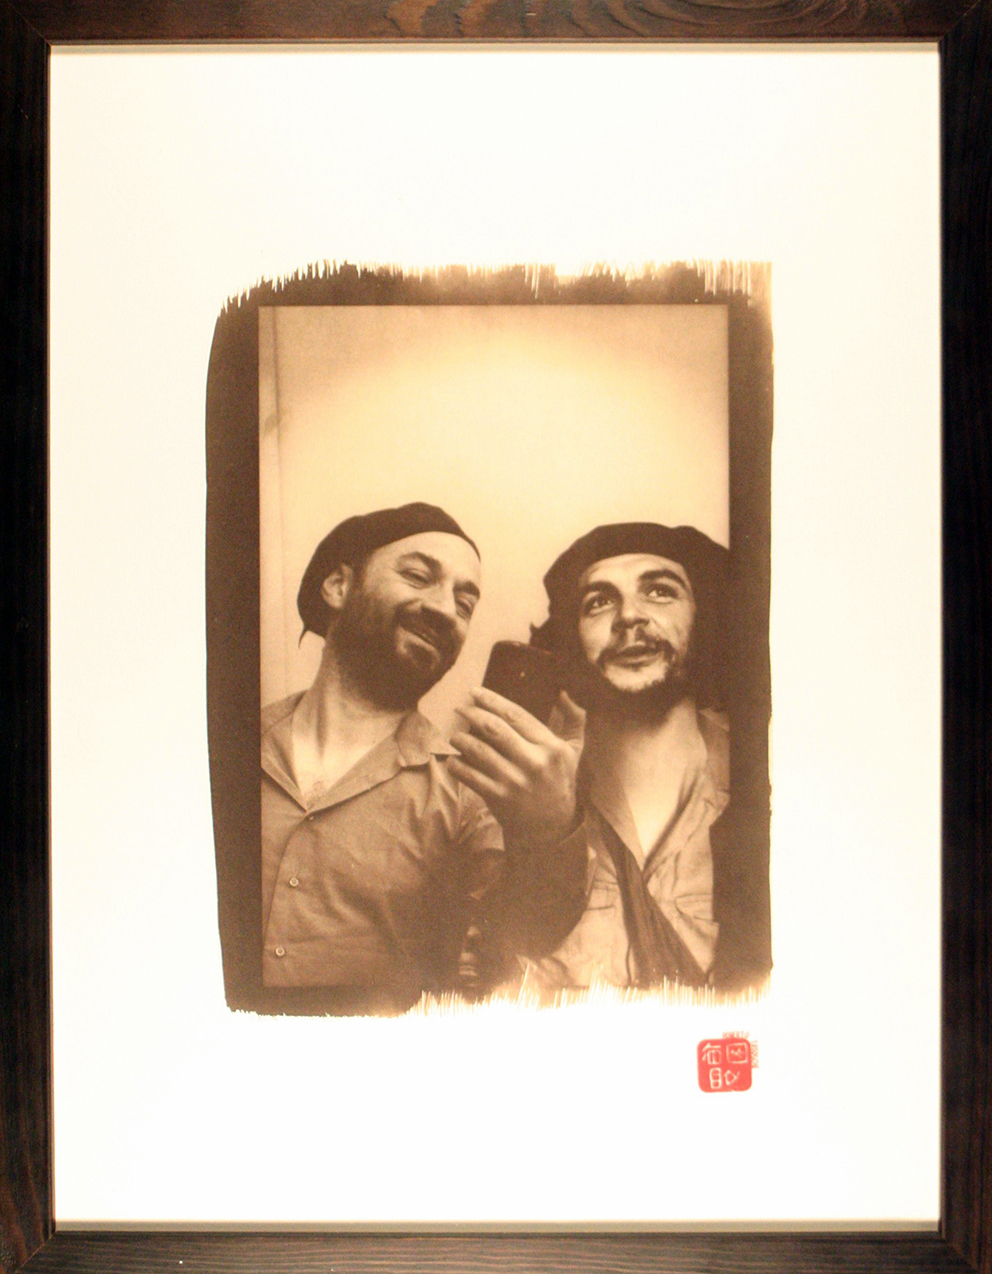 - MOI ET ...  C. G.Original 18x24cm photo-montage with Van Dyck process print, in 33x43cm glass protected wooden frame.Ed. of 25300 €